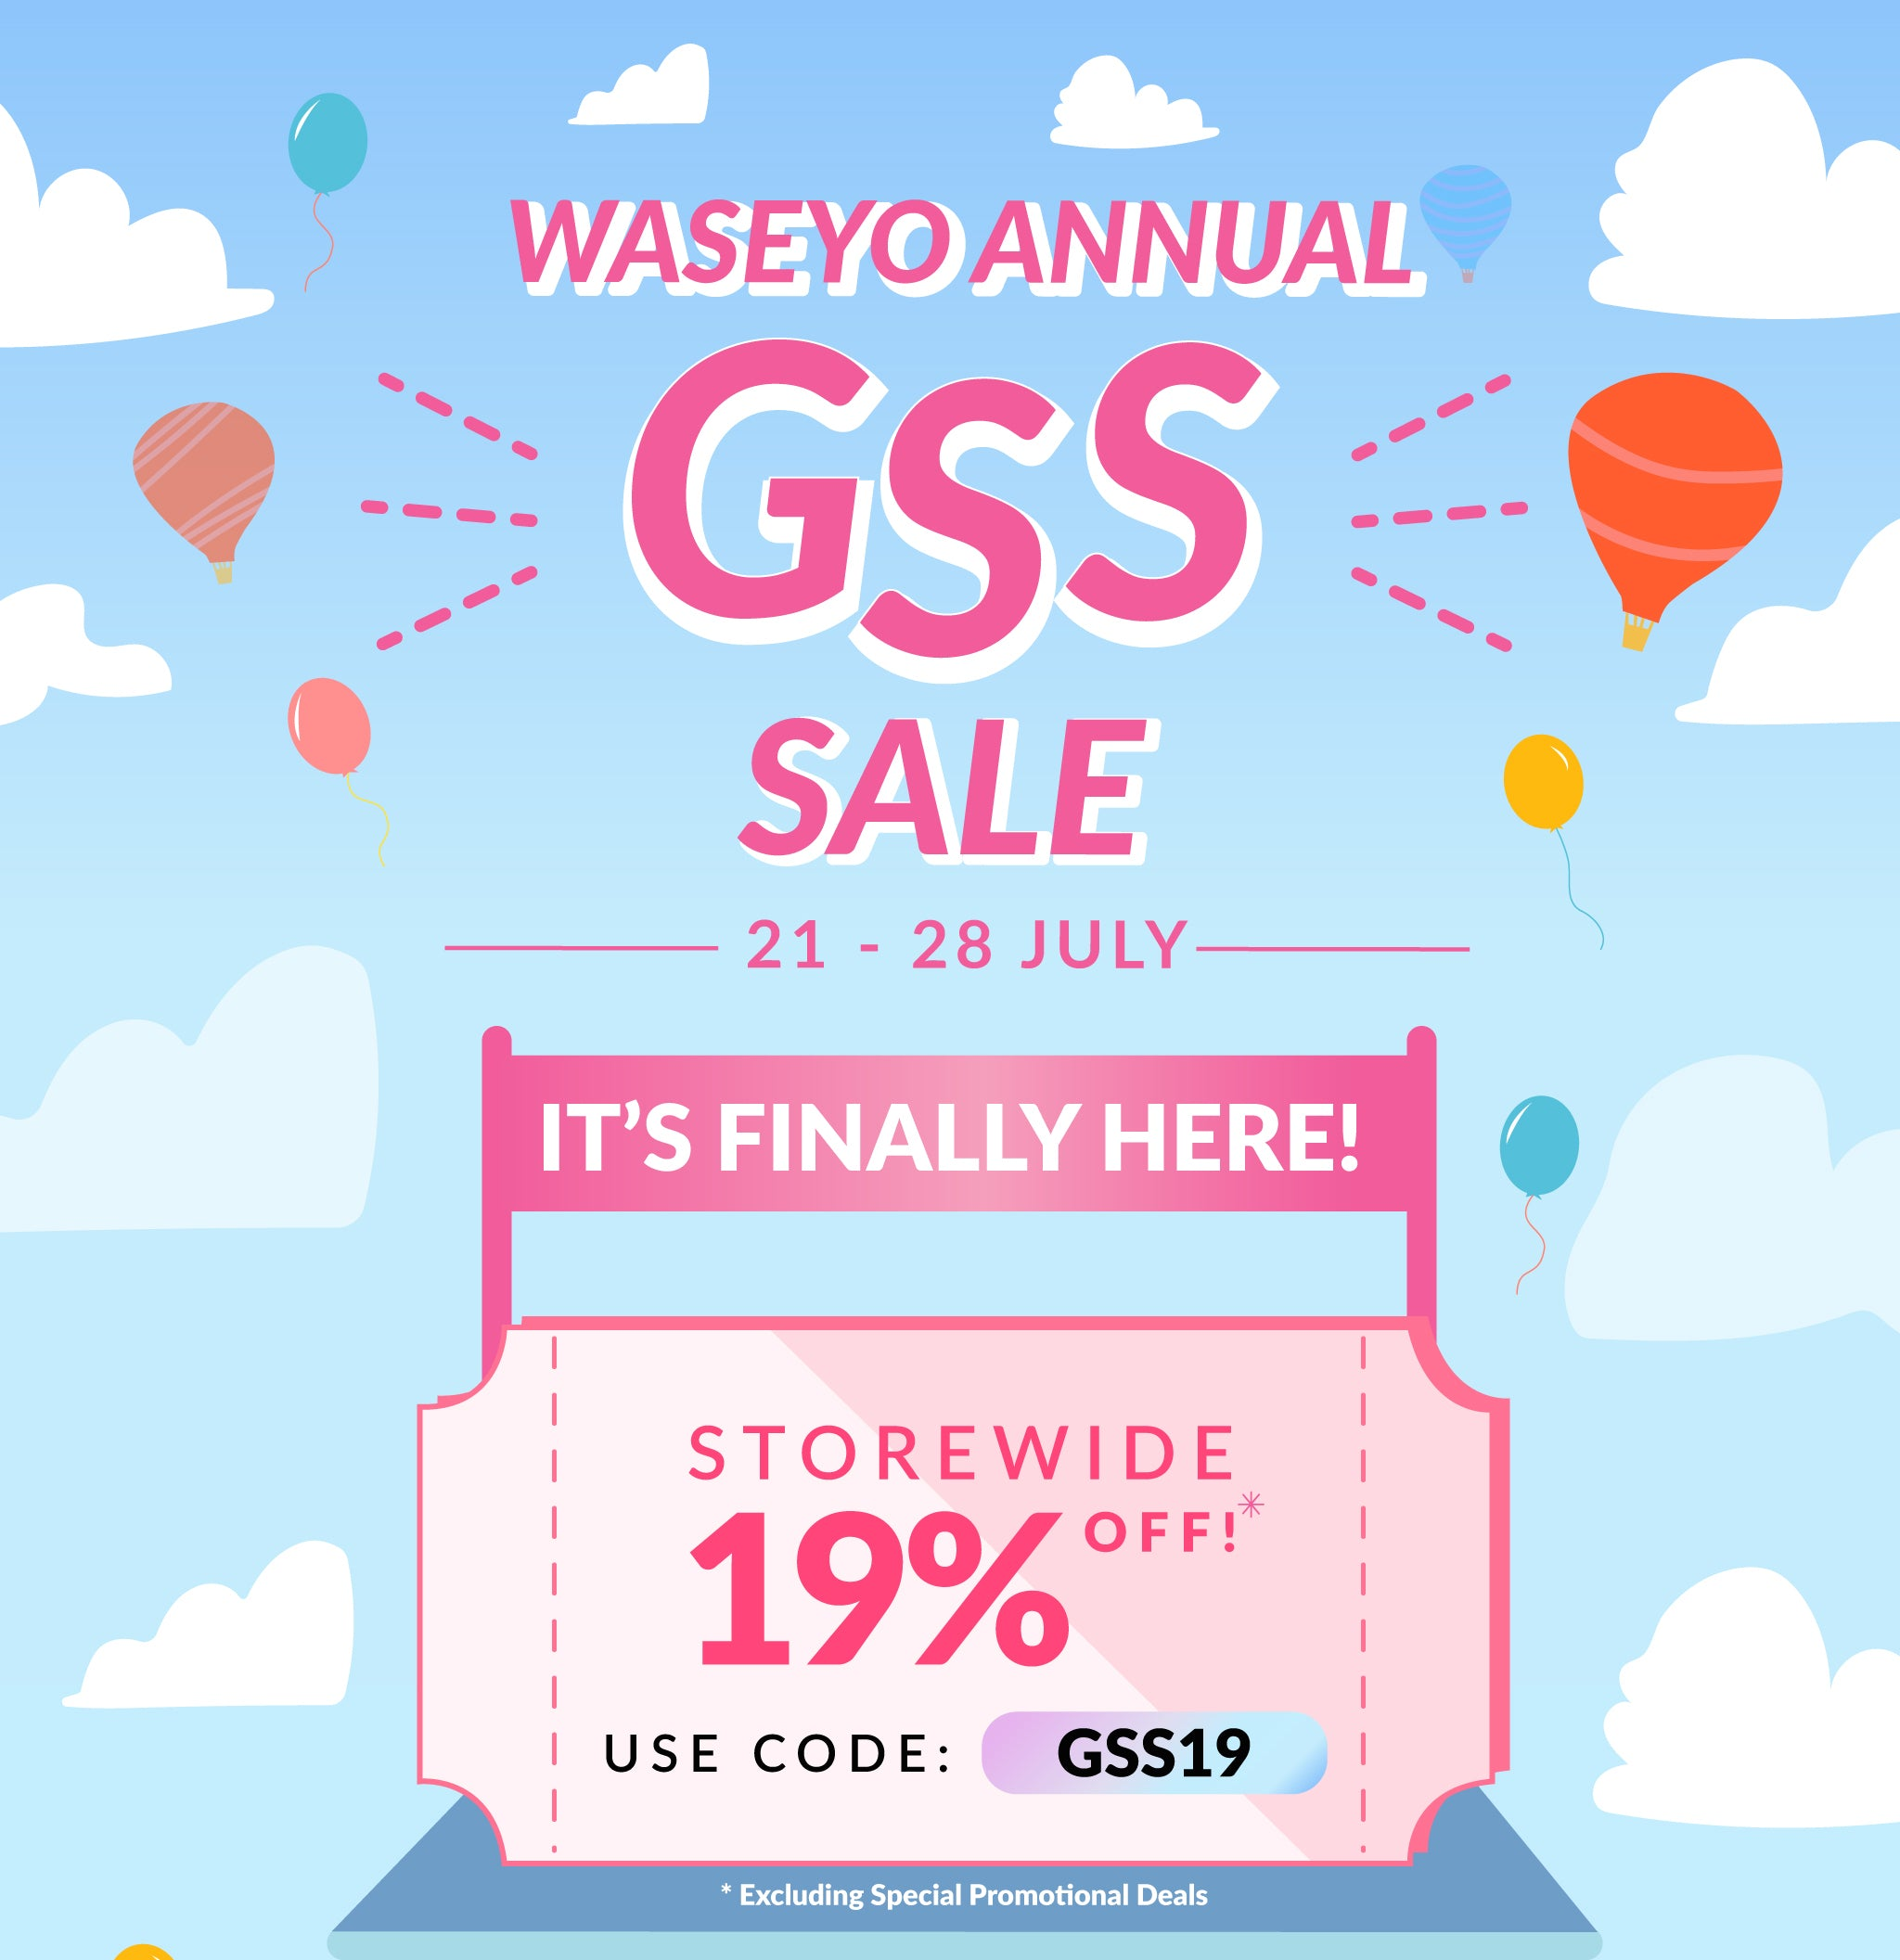 Waseyo Annual GSS Sale is now here! Get 19% OFF Storewide now!